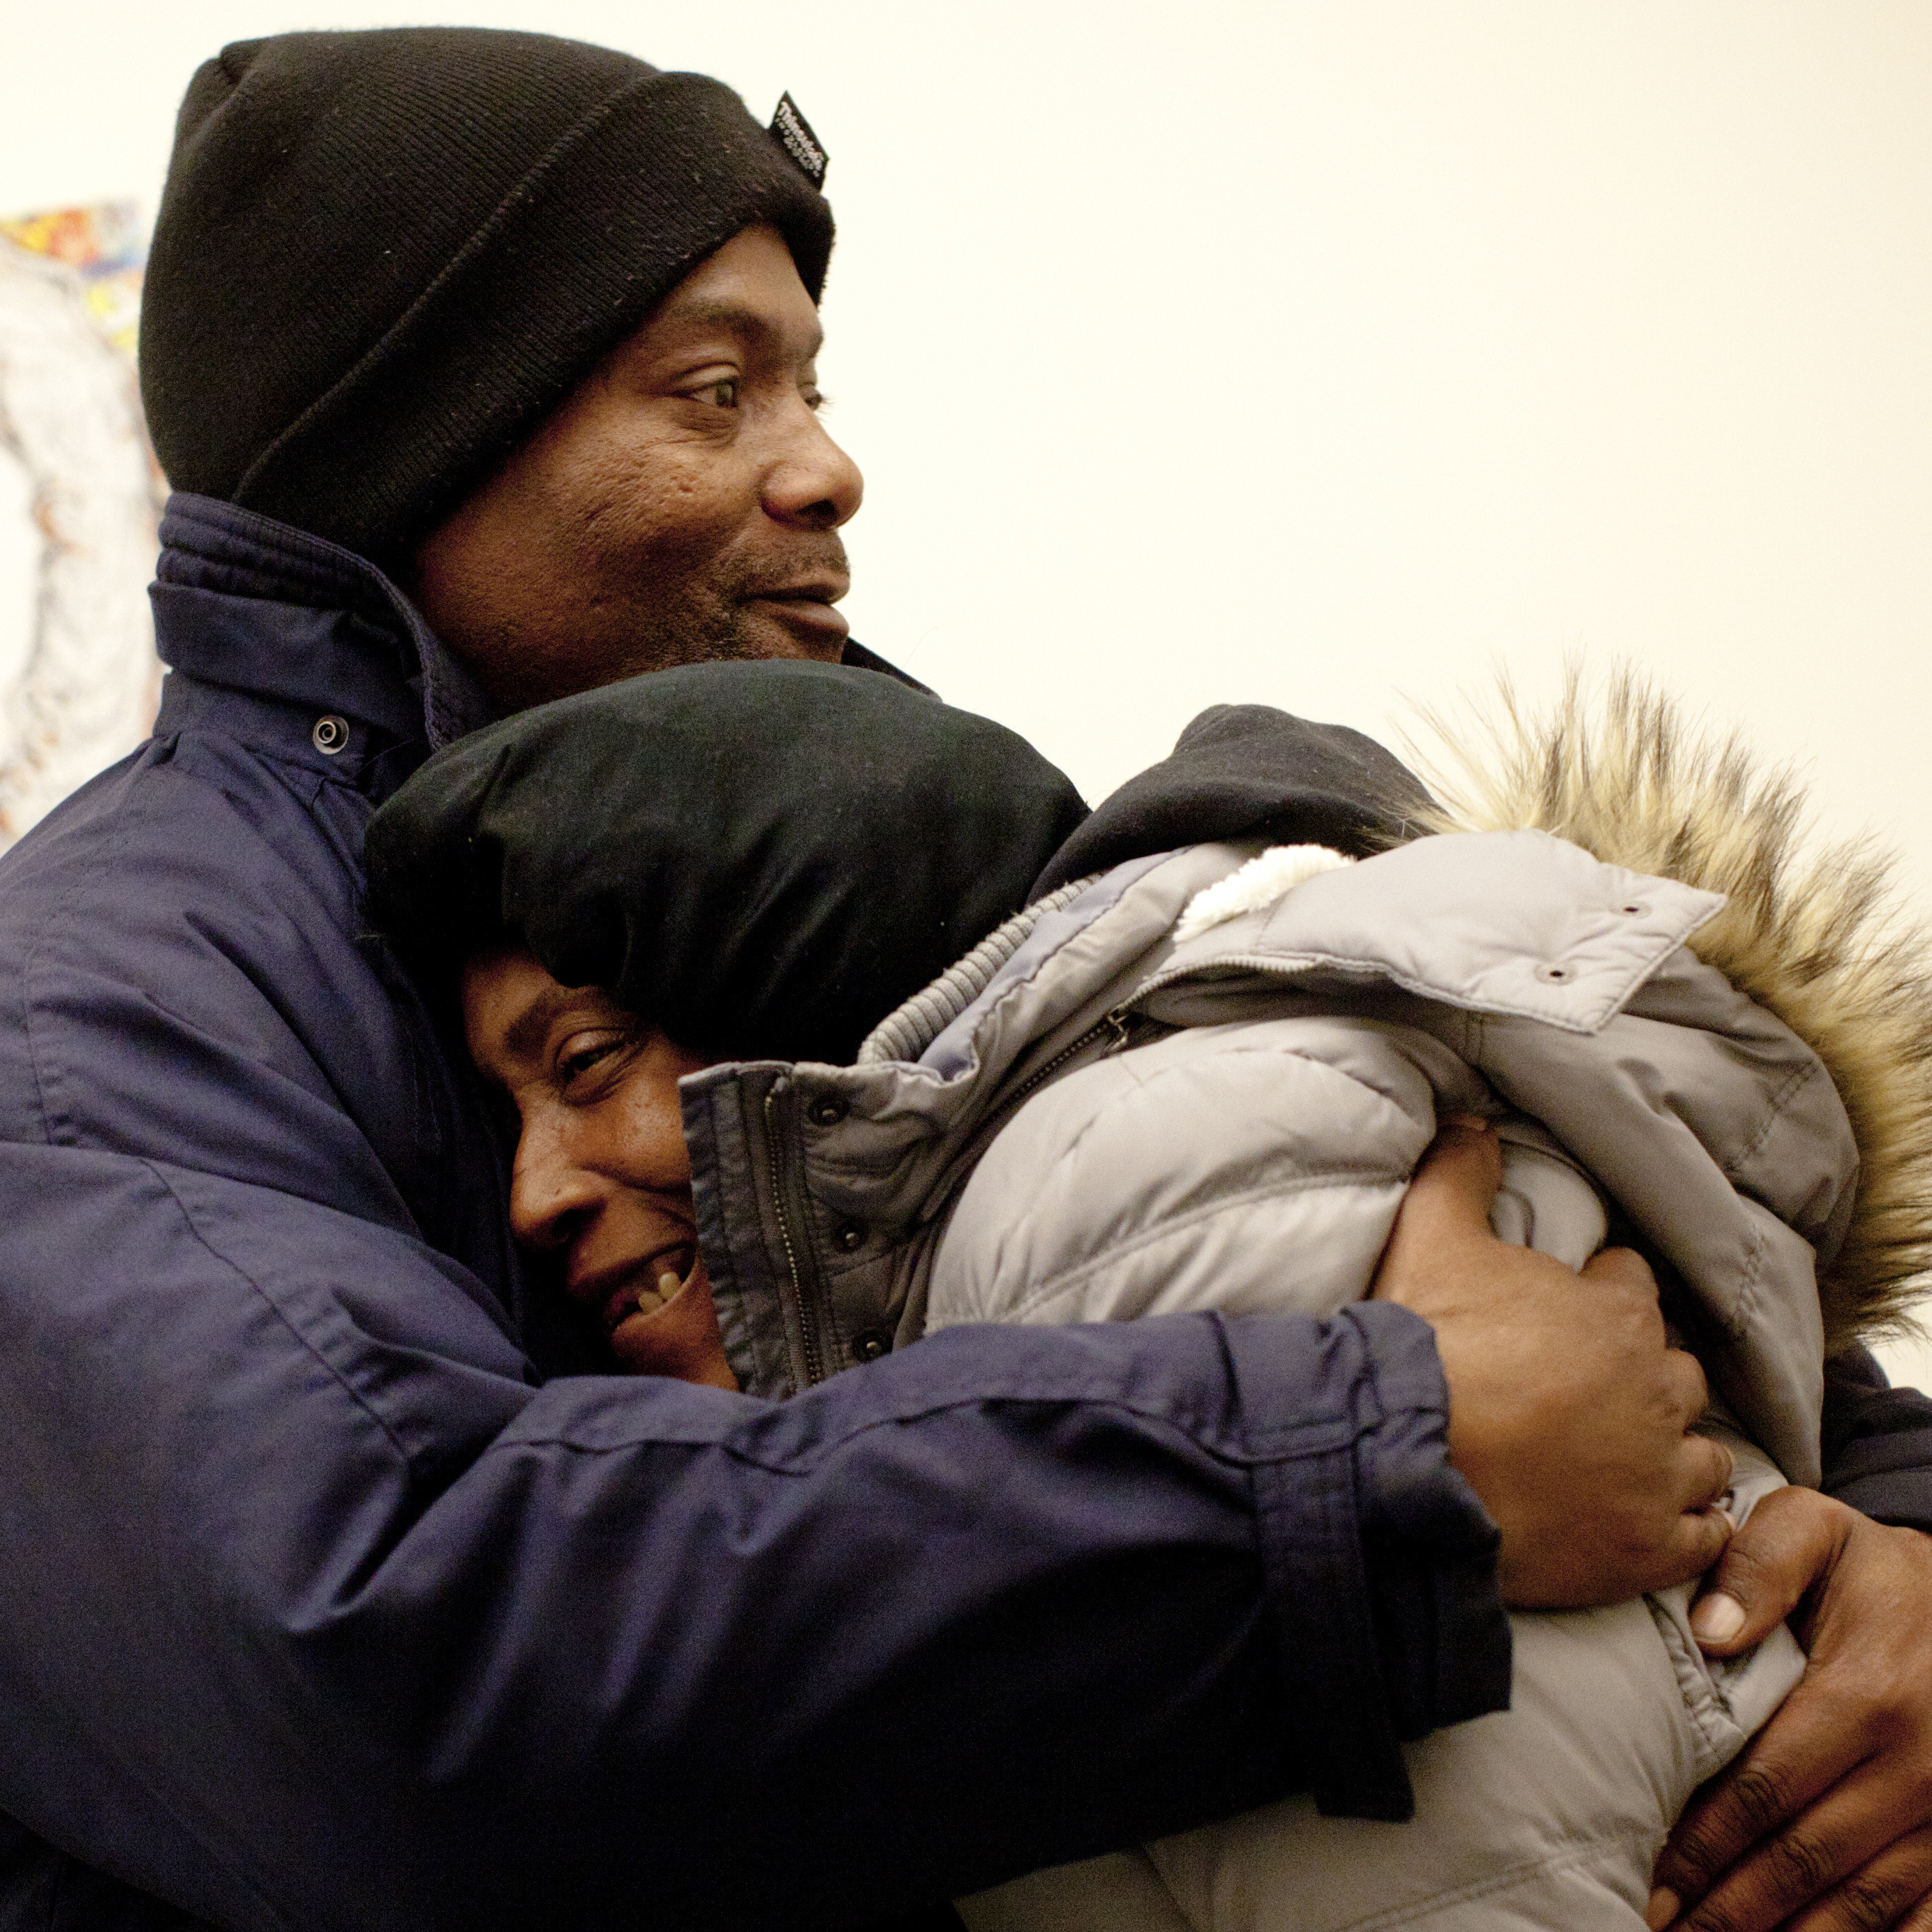 Tony Simmons hugs Evelyn Hearne, who has been homeless for four years, at Baltimore's Health Care for the Homeless. Simmons, homeless for 14 months, is trying to help Hearne and her husband get housing.